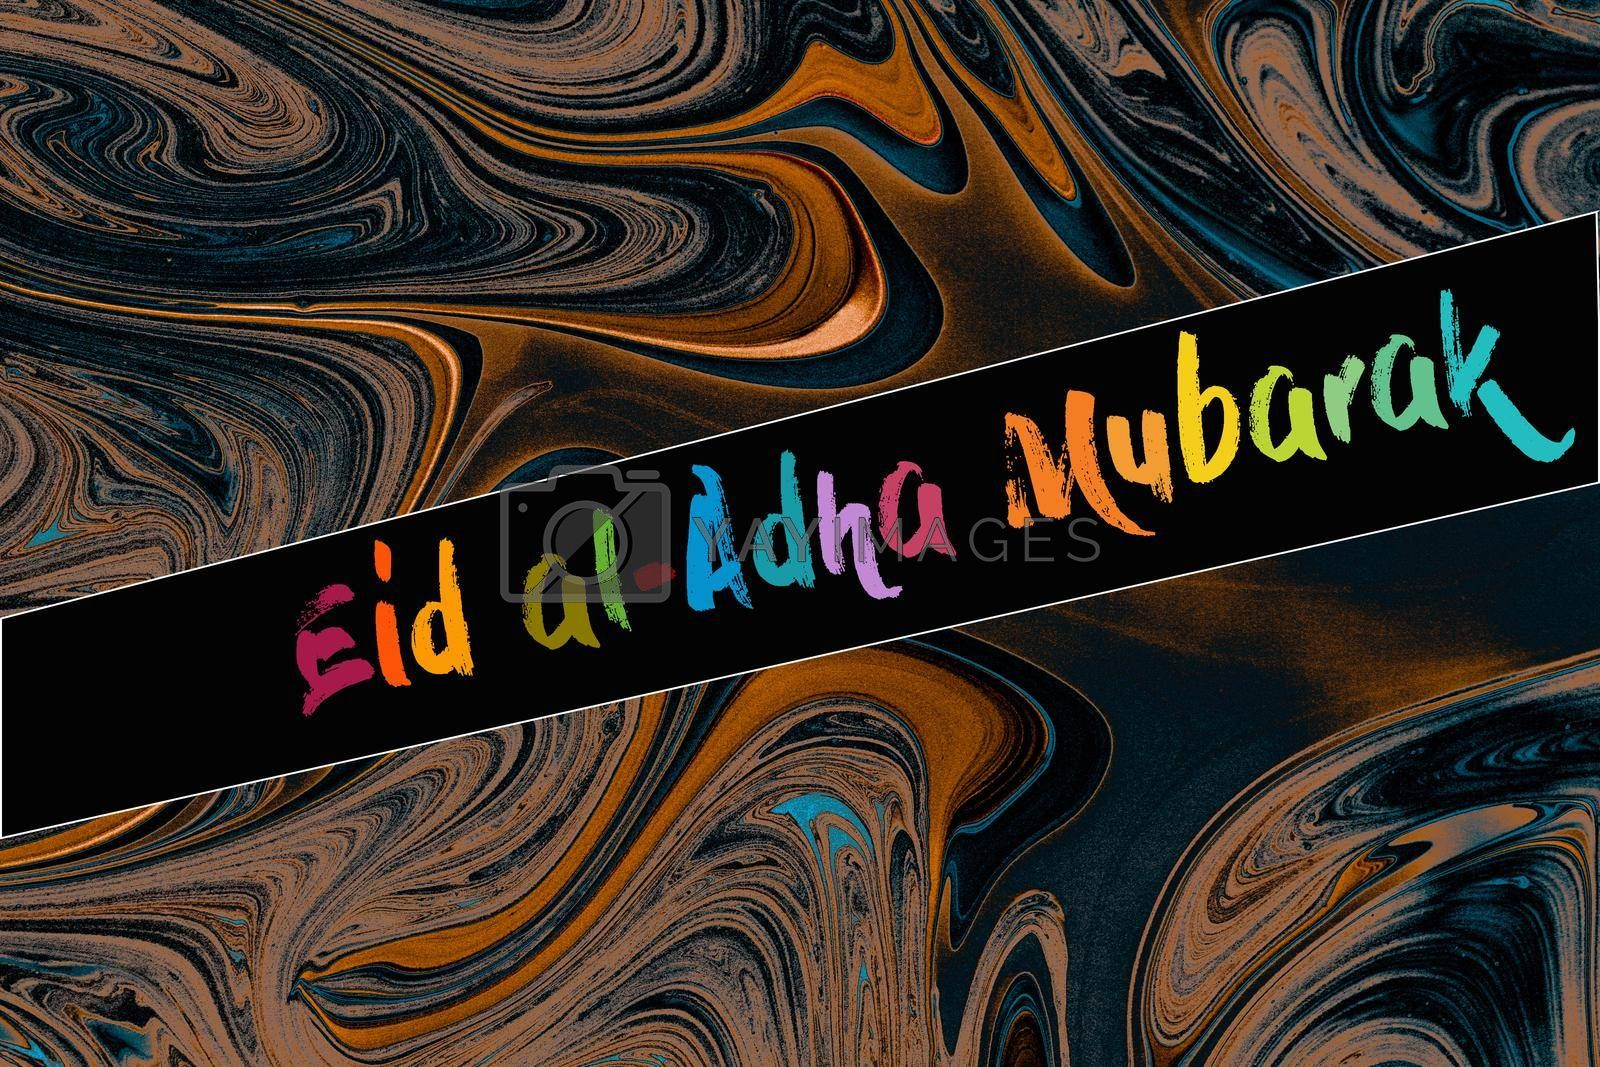 festival of sacrifice Happy Eid al-Adha. Eid Mubarak greeting Card.